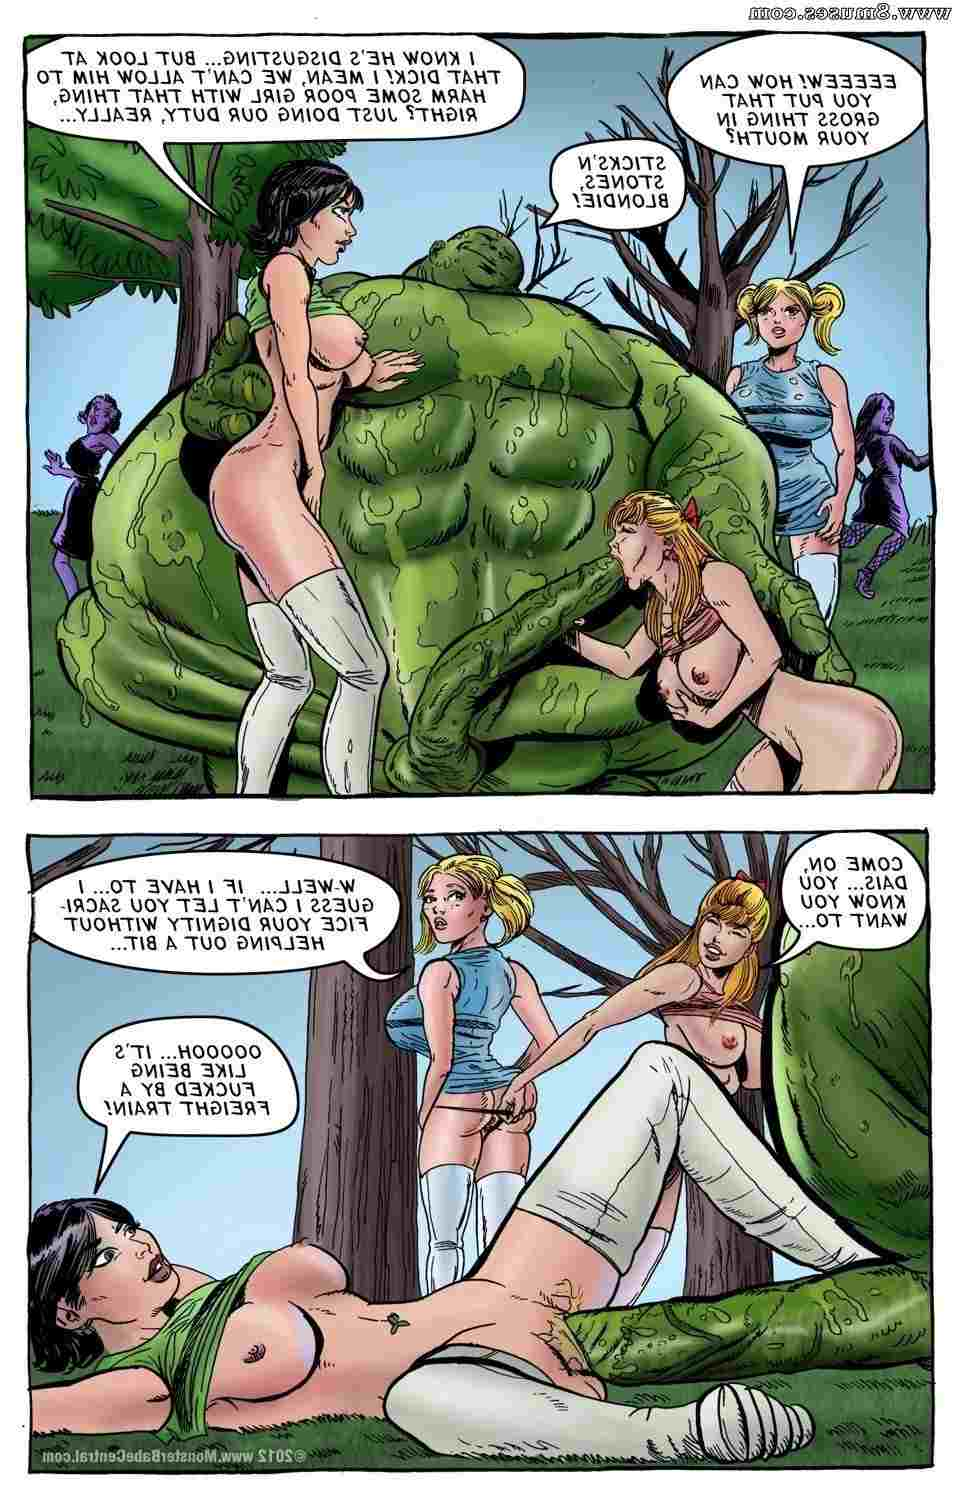 Central-Comics/Monster-Babe-Central/Monster-Channel Monster_Channel__8muses_-_Sex_and_Porn_Comics_6.jpg